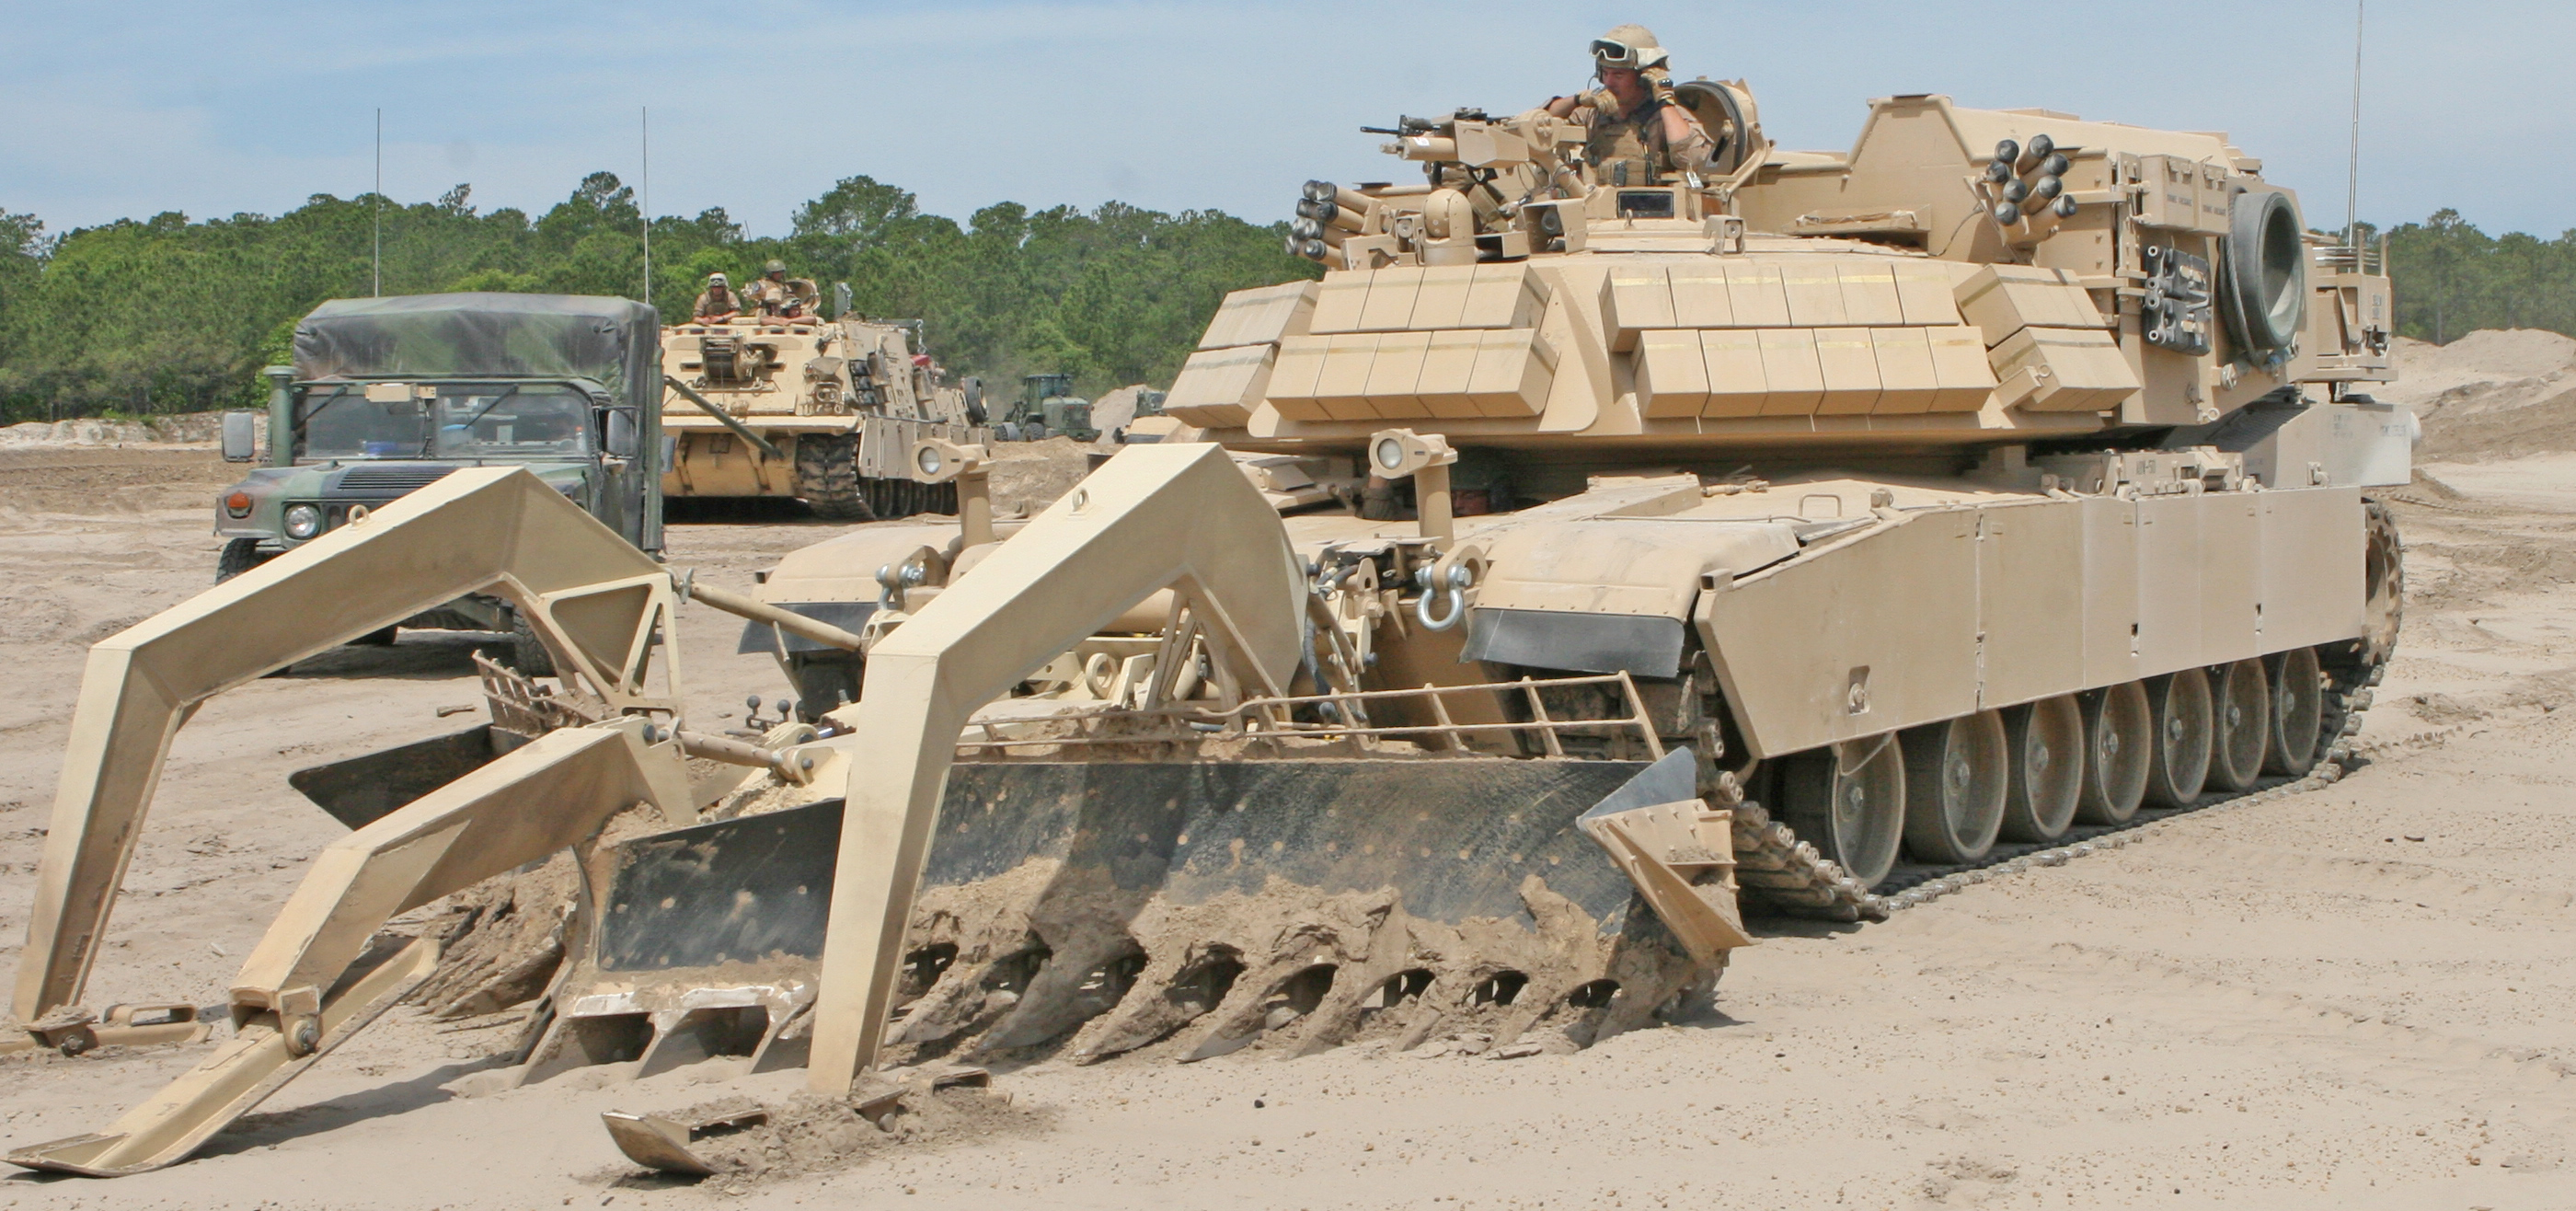 This fearsome looking American Assault Breacher Vehicle (ABV) is made to clear obstacles and alter the battlefield while under heavy fire. The implements at the front indicate that this is a combat engineering vehicle. Built from an Abrams tank chassis, the ABV is extremely durable.